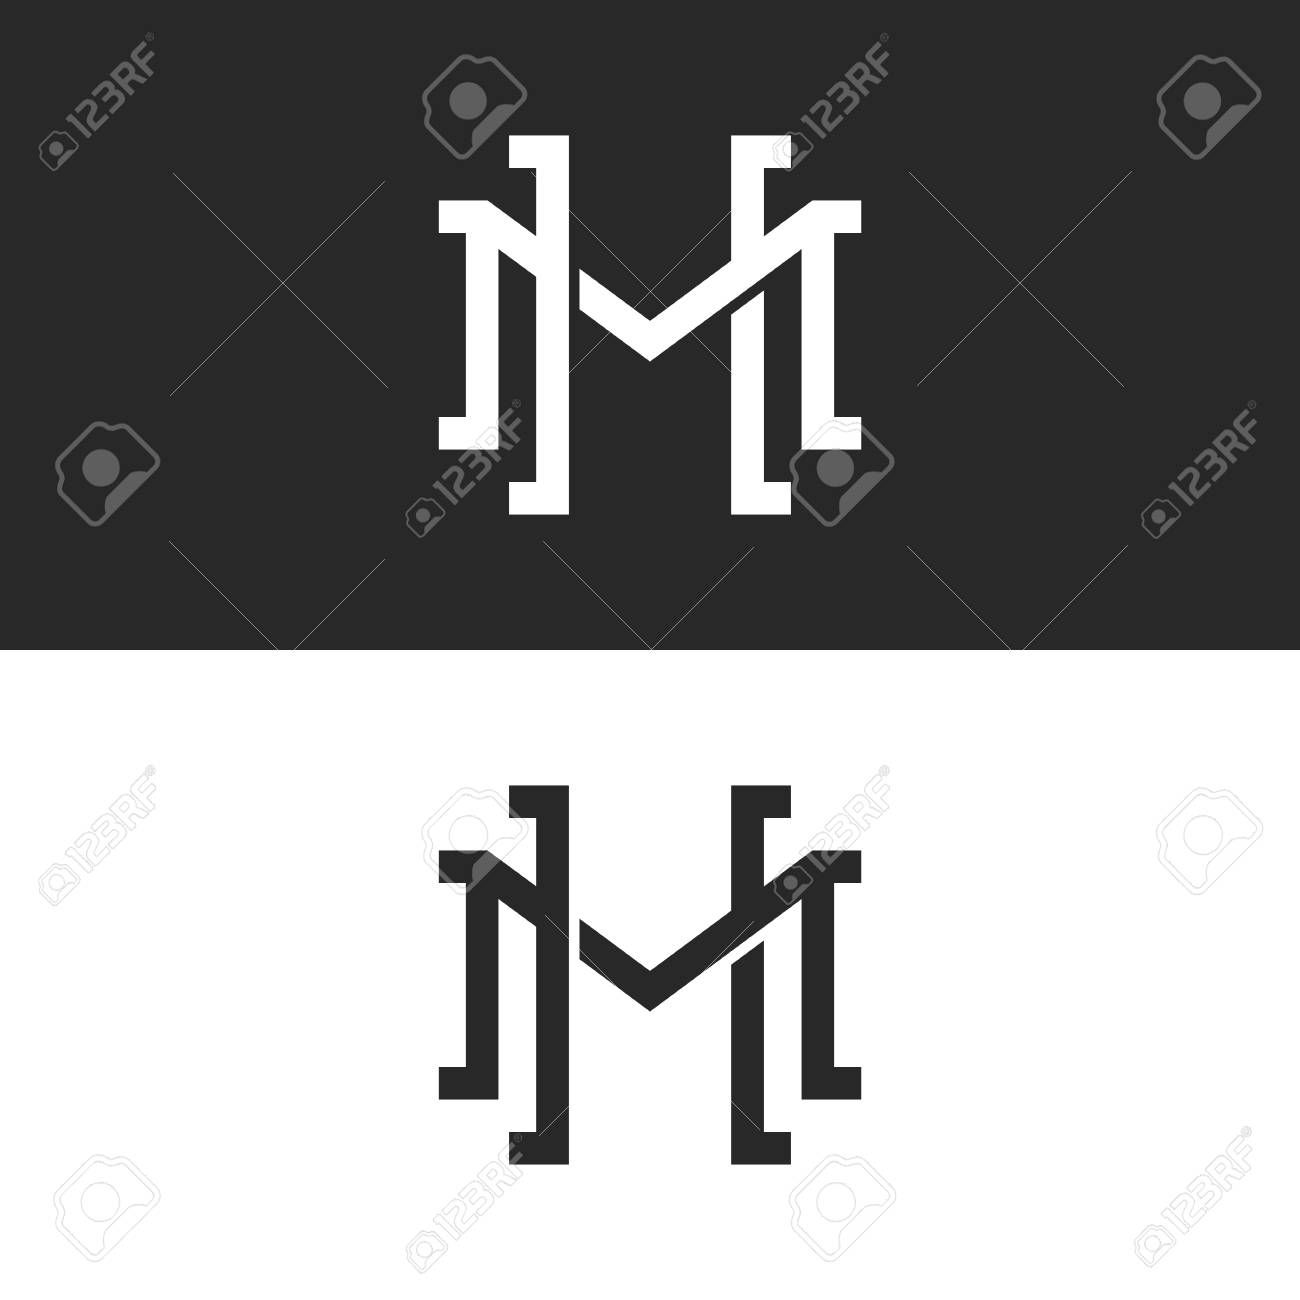 Initials HM or MH overlapping letters logo design, two